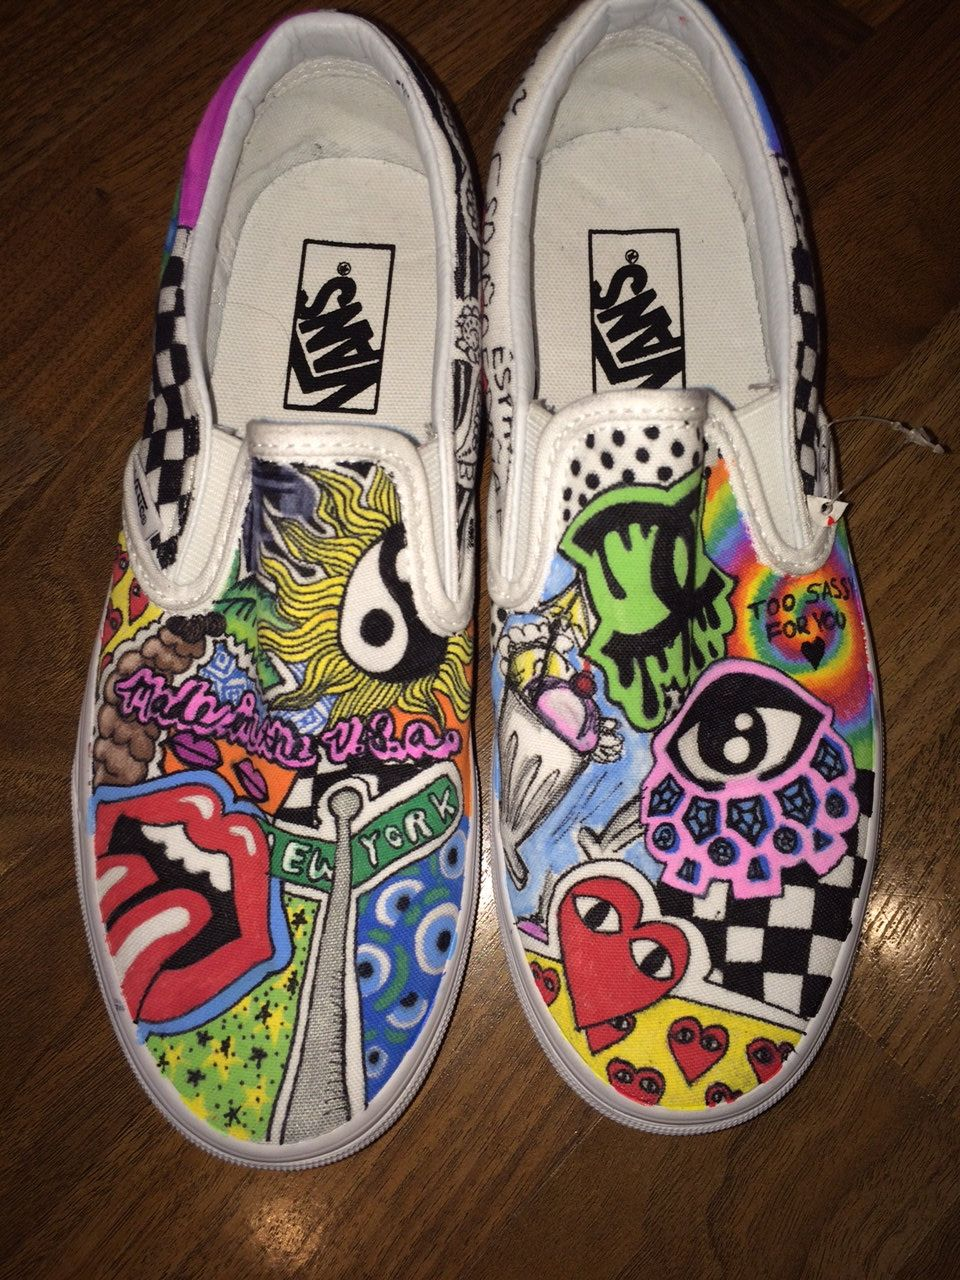 Customized Vans By Kicksbymaya On Etsy Custom Vans Shoes Vans